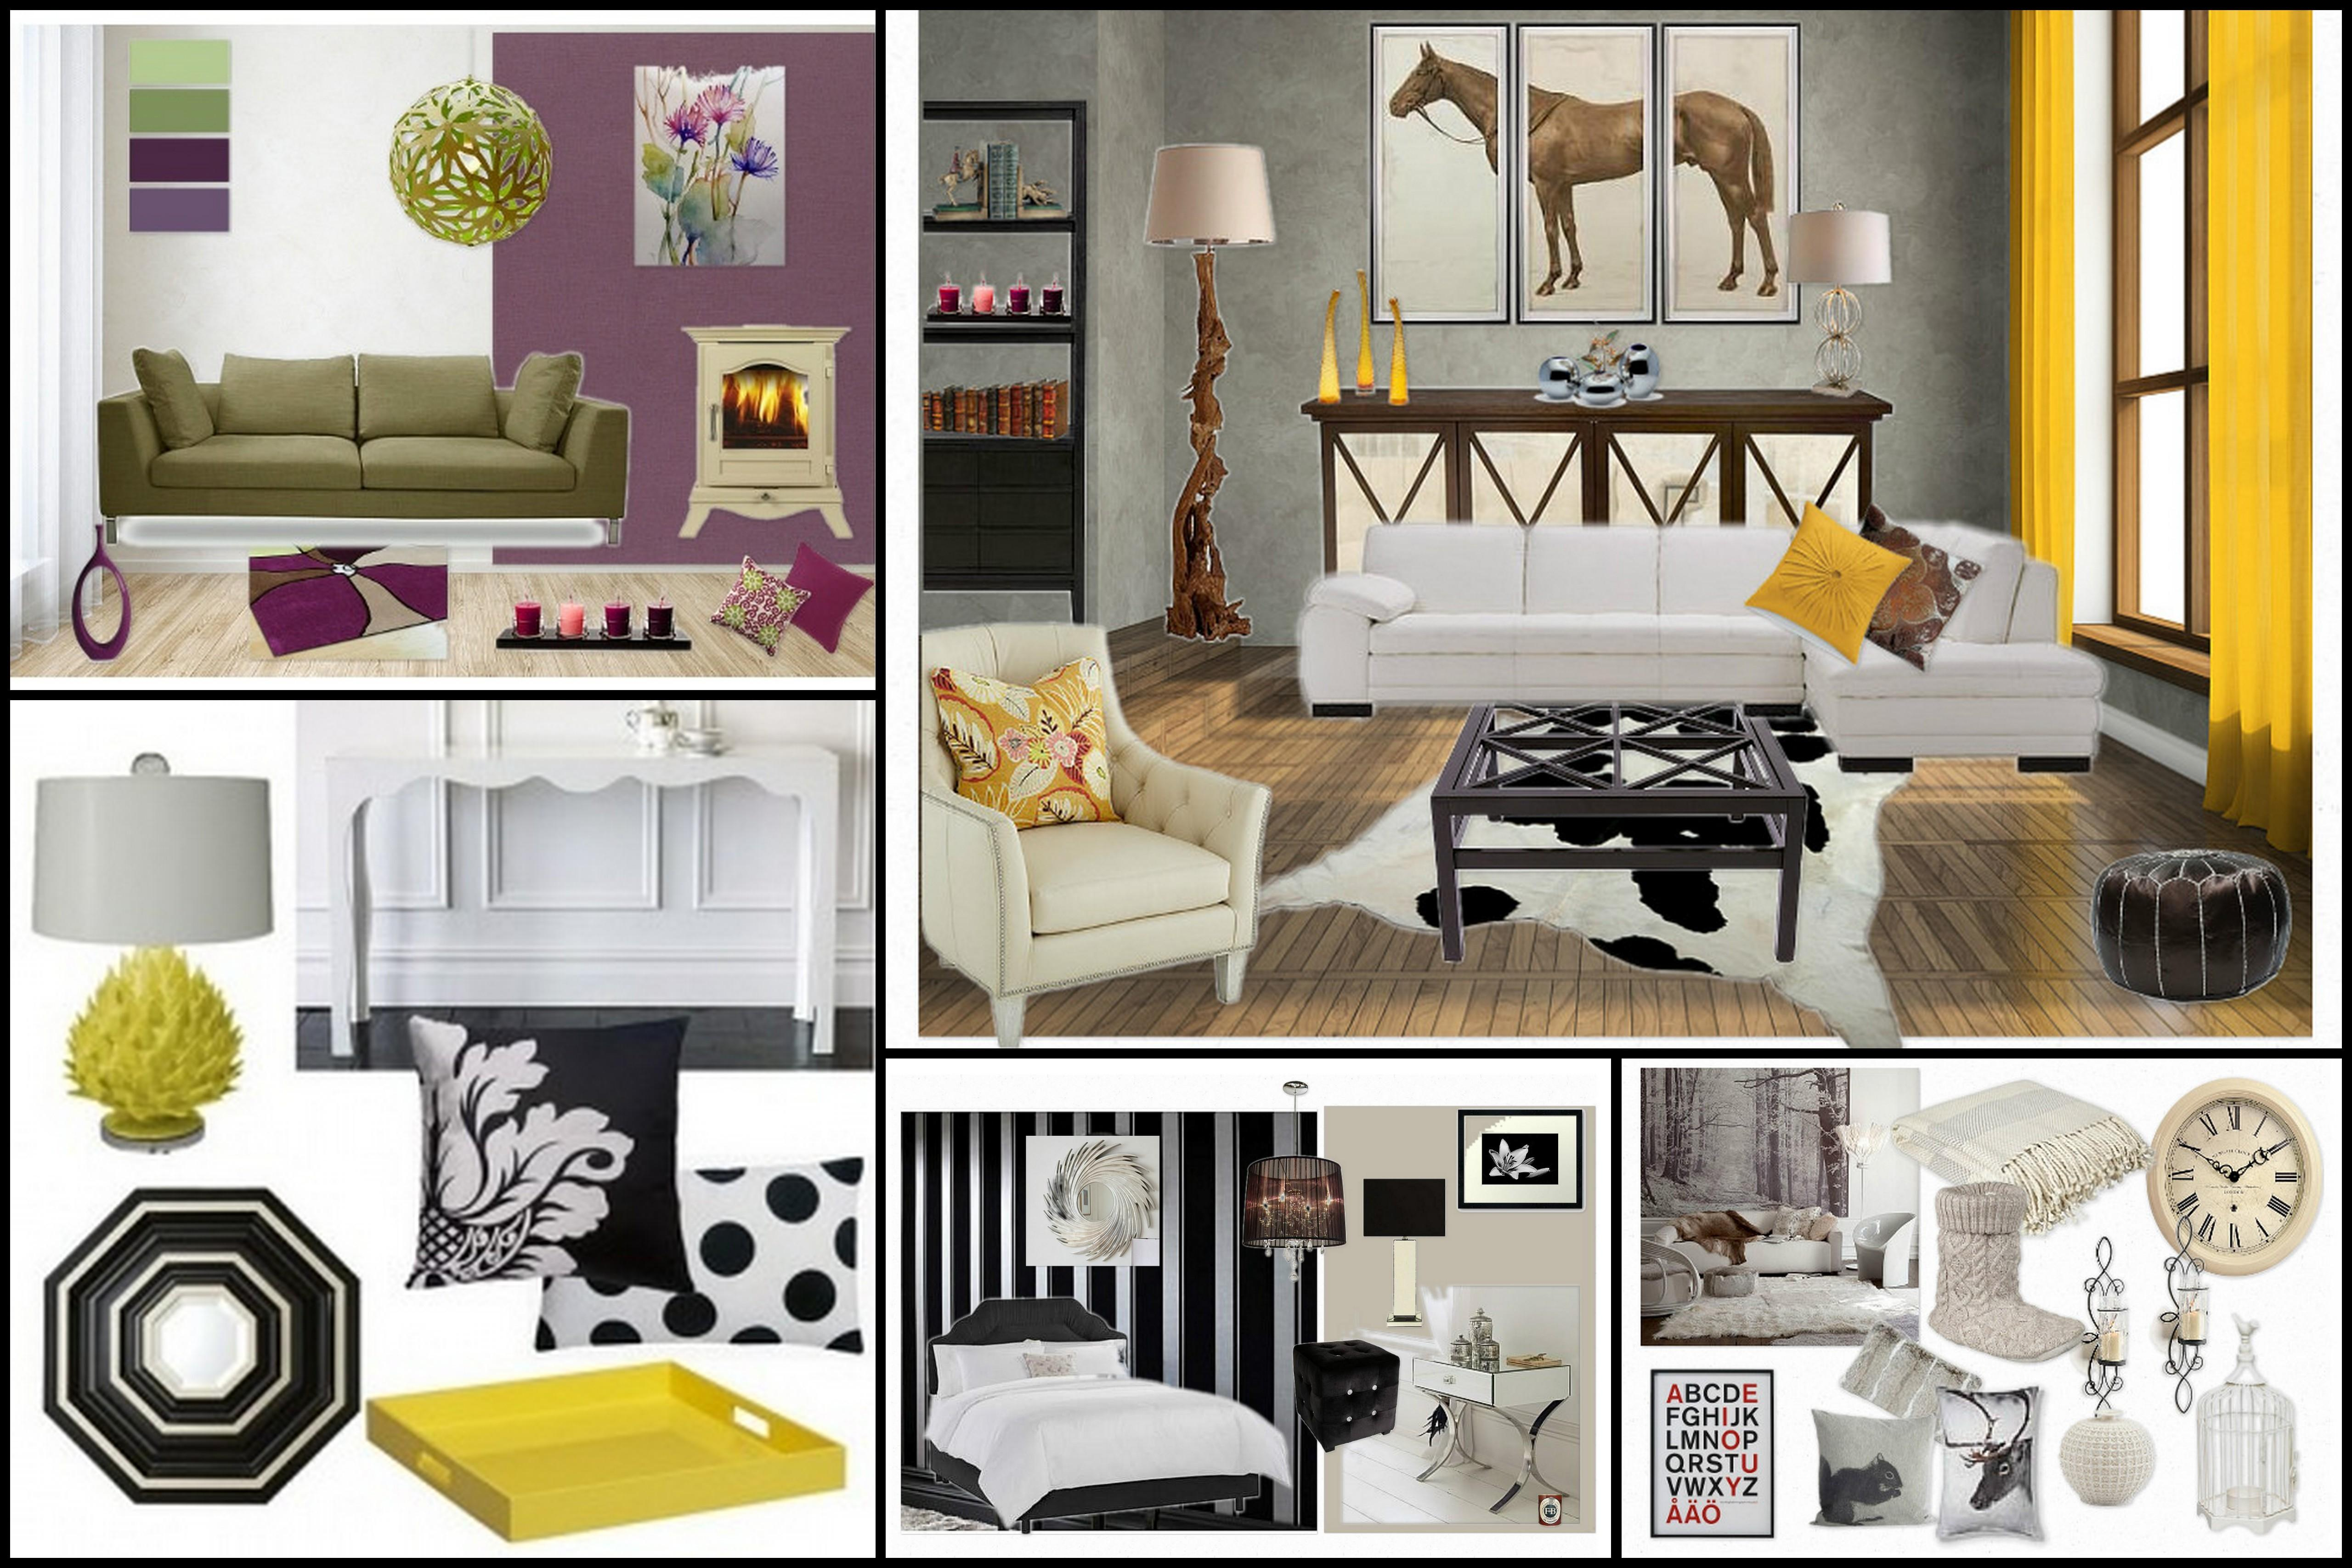 Sophisticated Colors Mood Interior Design That Will Impress Your Friends Beautiful Decoratorist